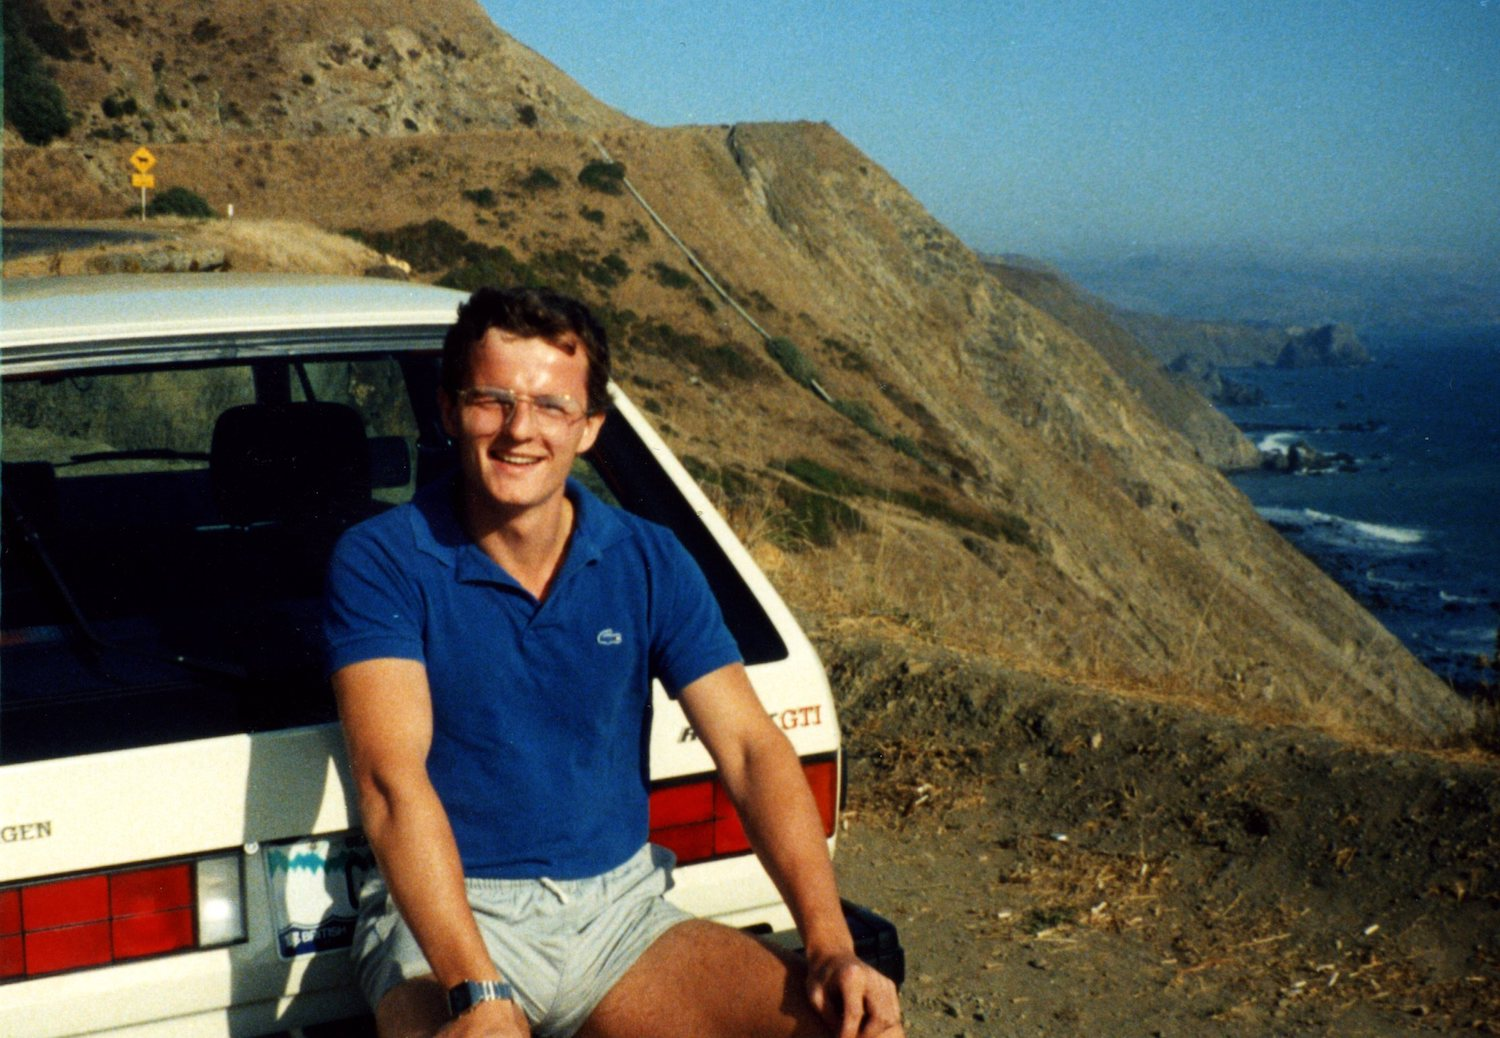 VW GTI with owner on pacific coast highway in 1984